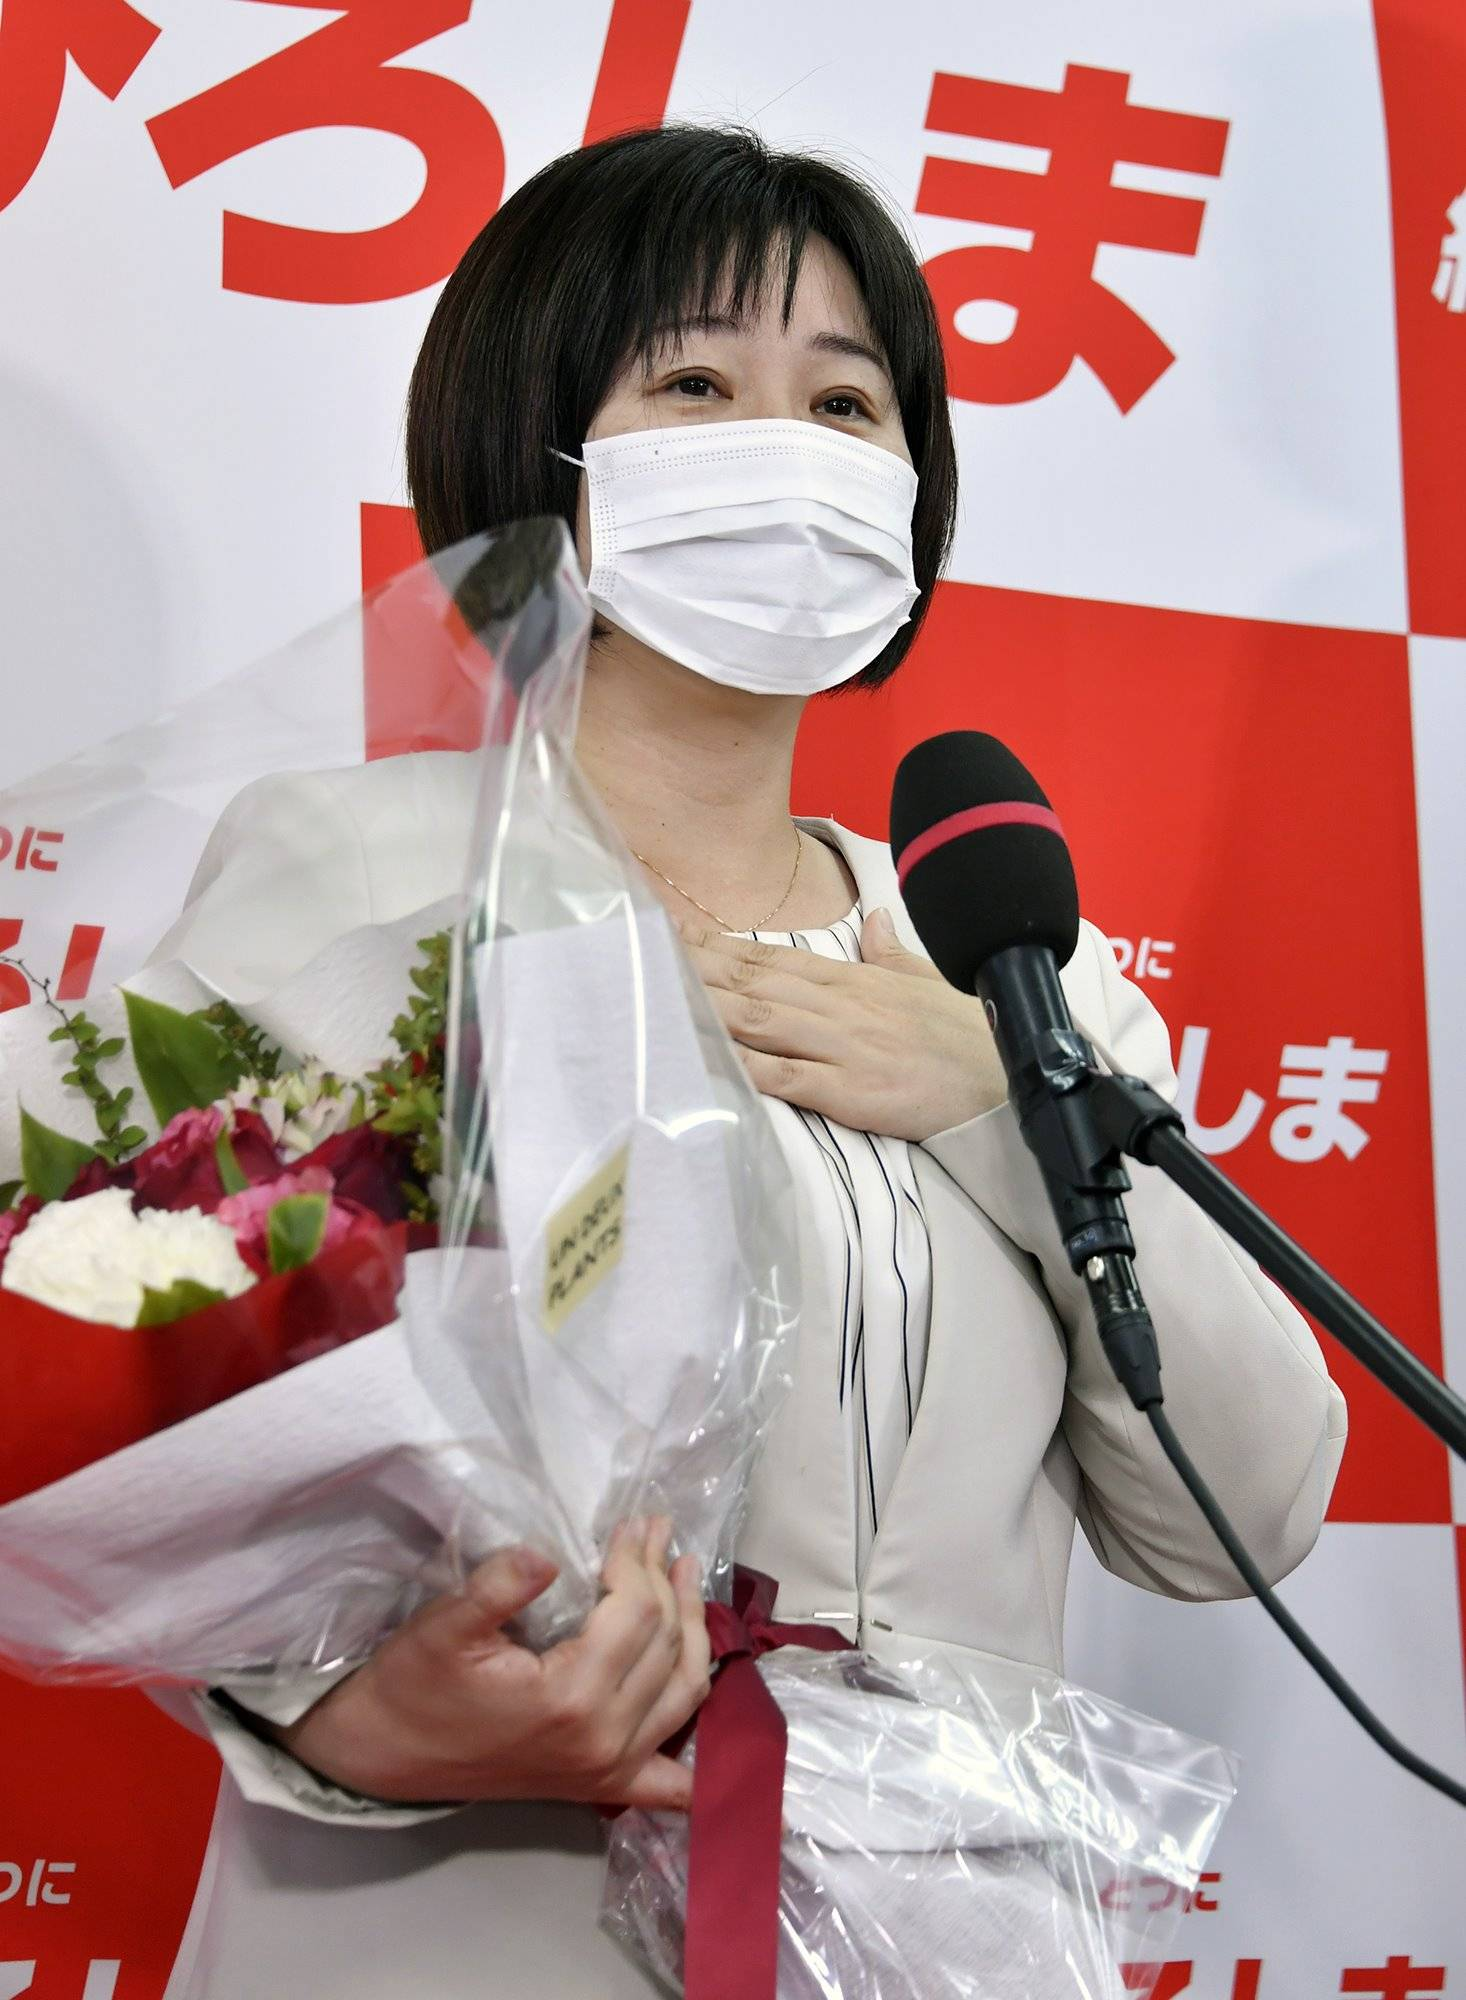 Haruko Miyaguchi, a former broadcaster backed by three opposition parties, speaks to supporters after winning a seat in the Upper House in a by-election Sunday in Hiroshima. | KYODO